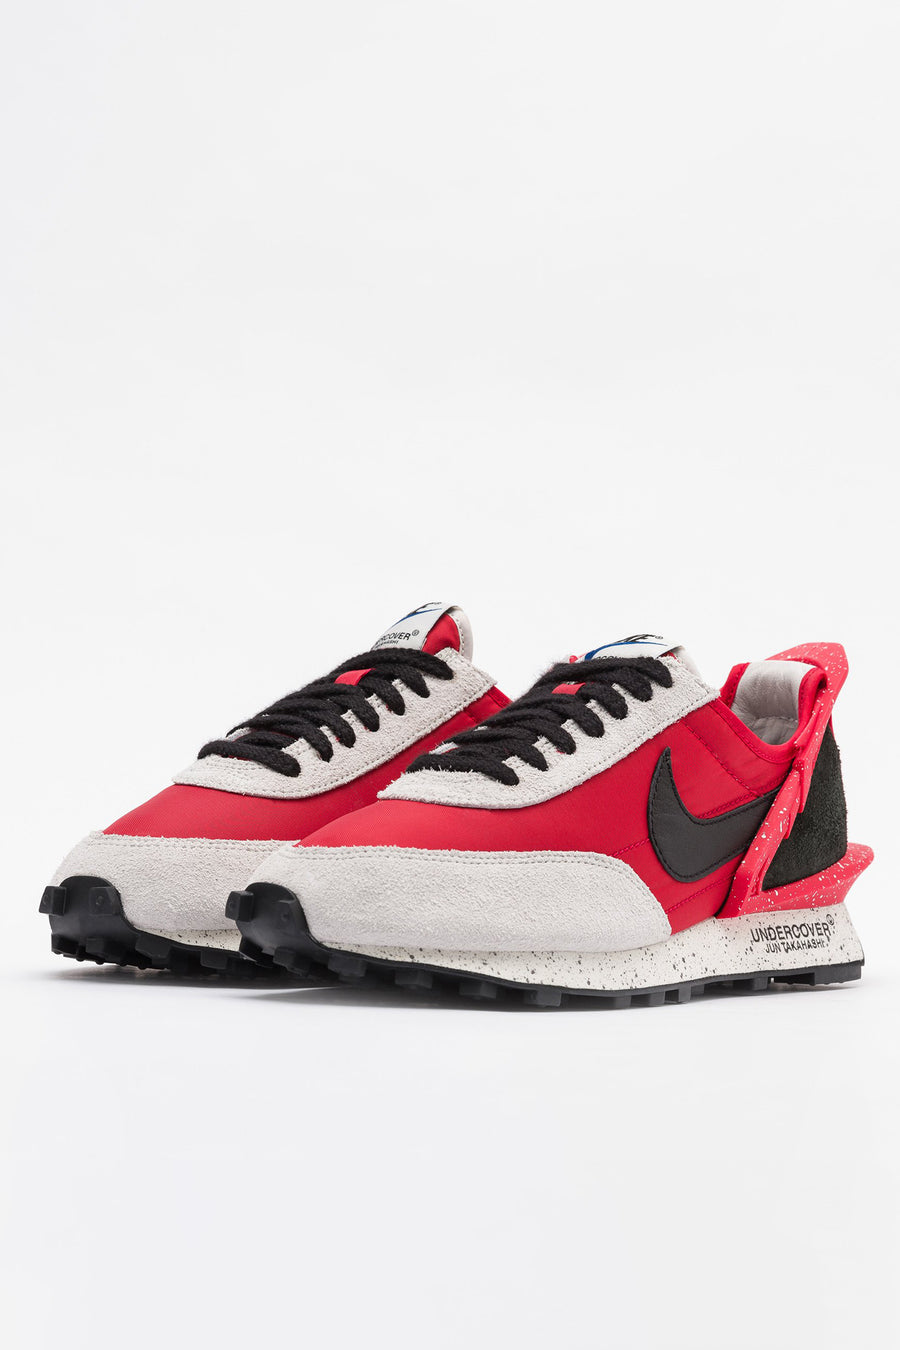 Nike Undercover W's Daybreak in Red/Black - Notre